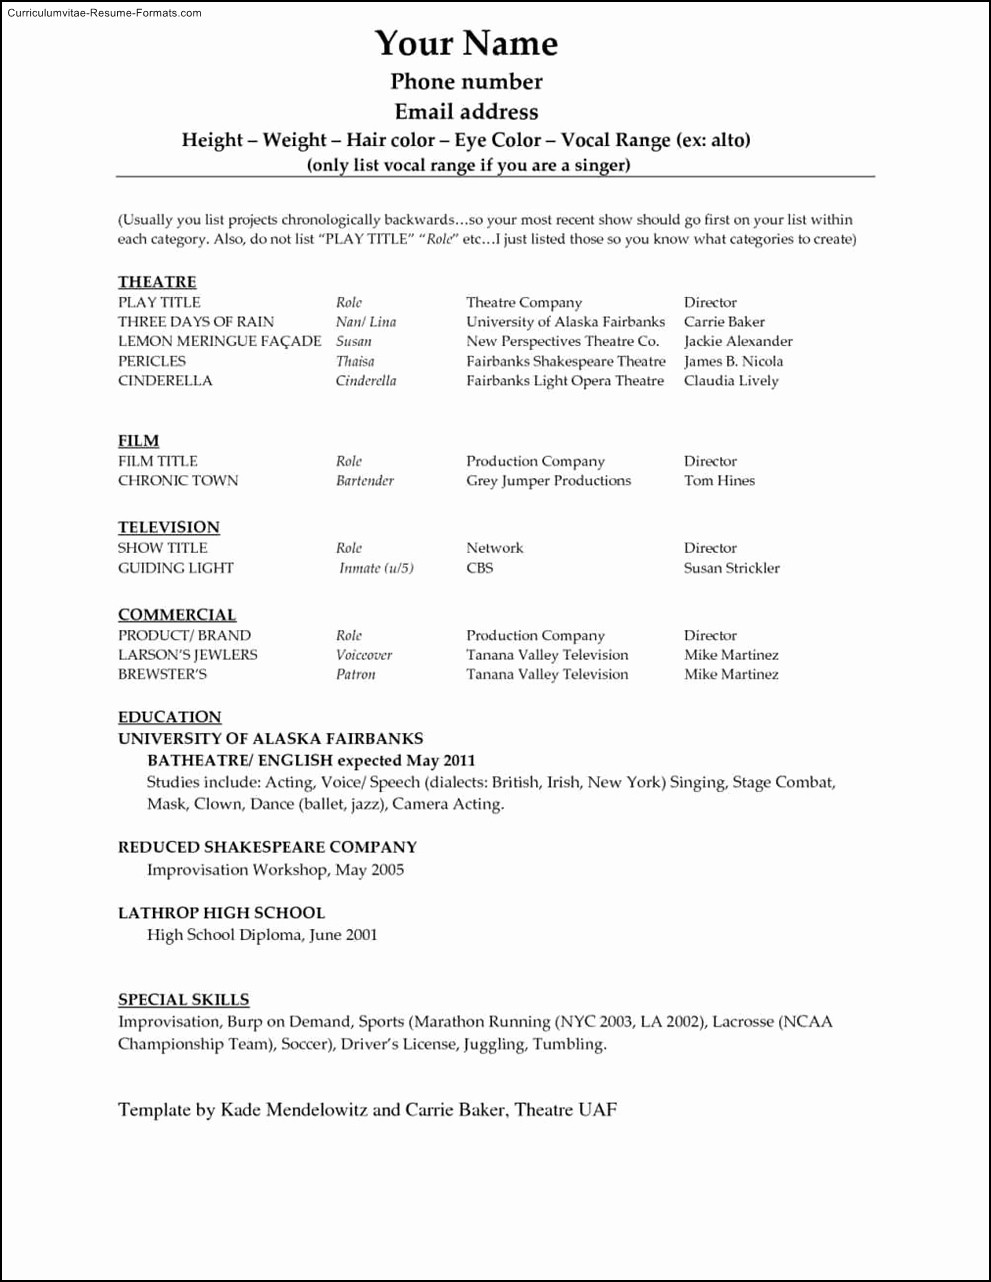 Ms Word Templates for Resumes Unique Microsoft Word 2010 Resume Template Free Samples